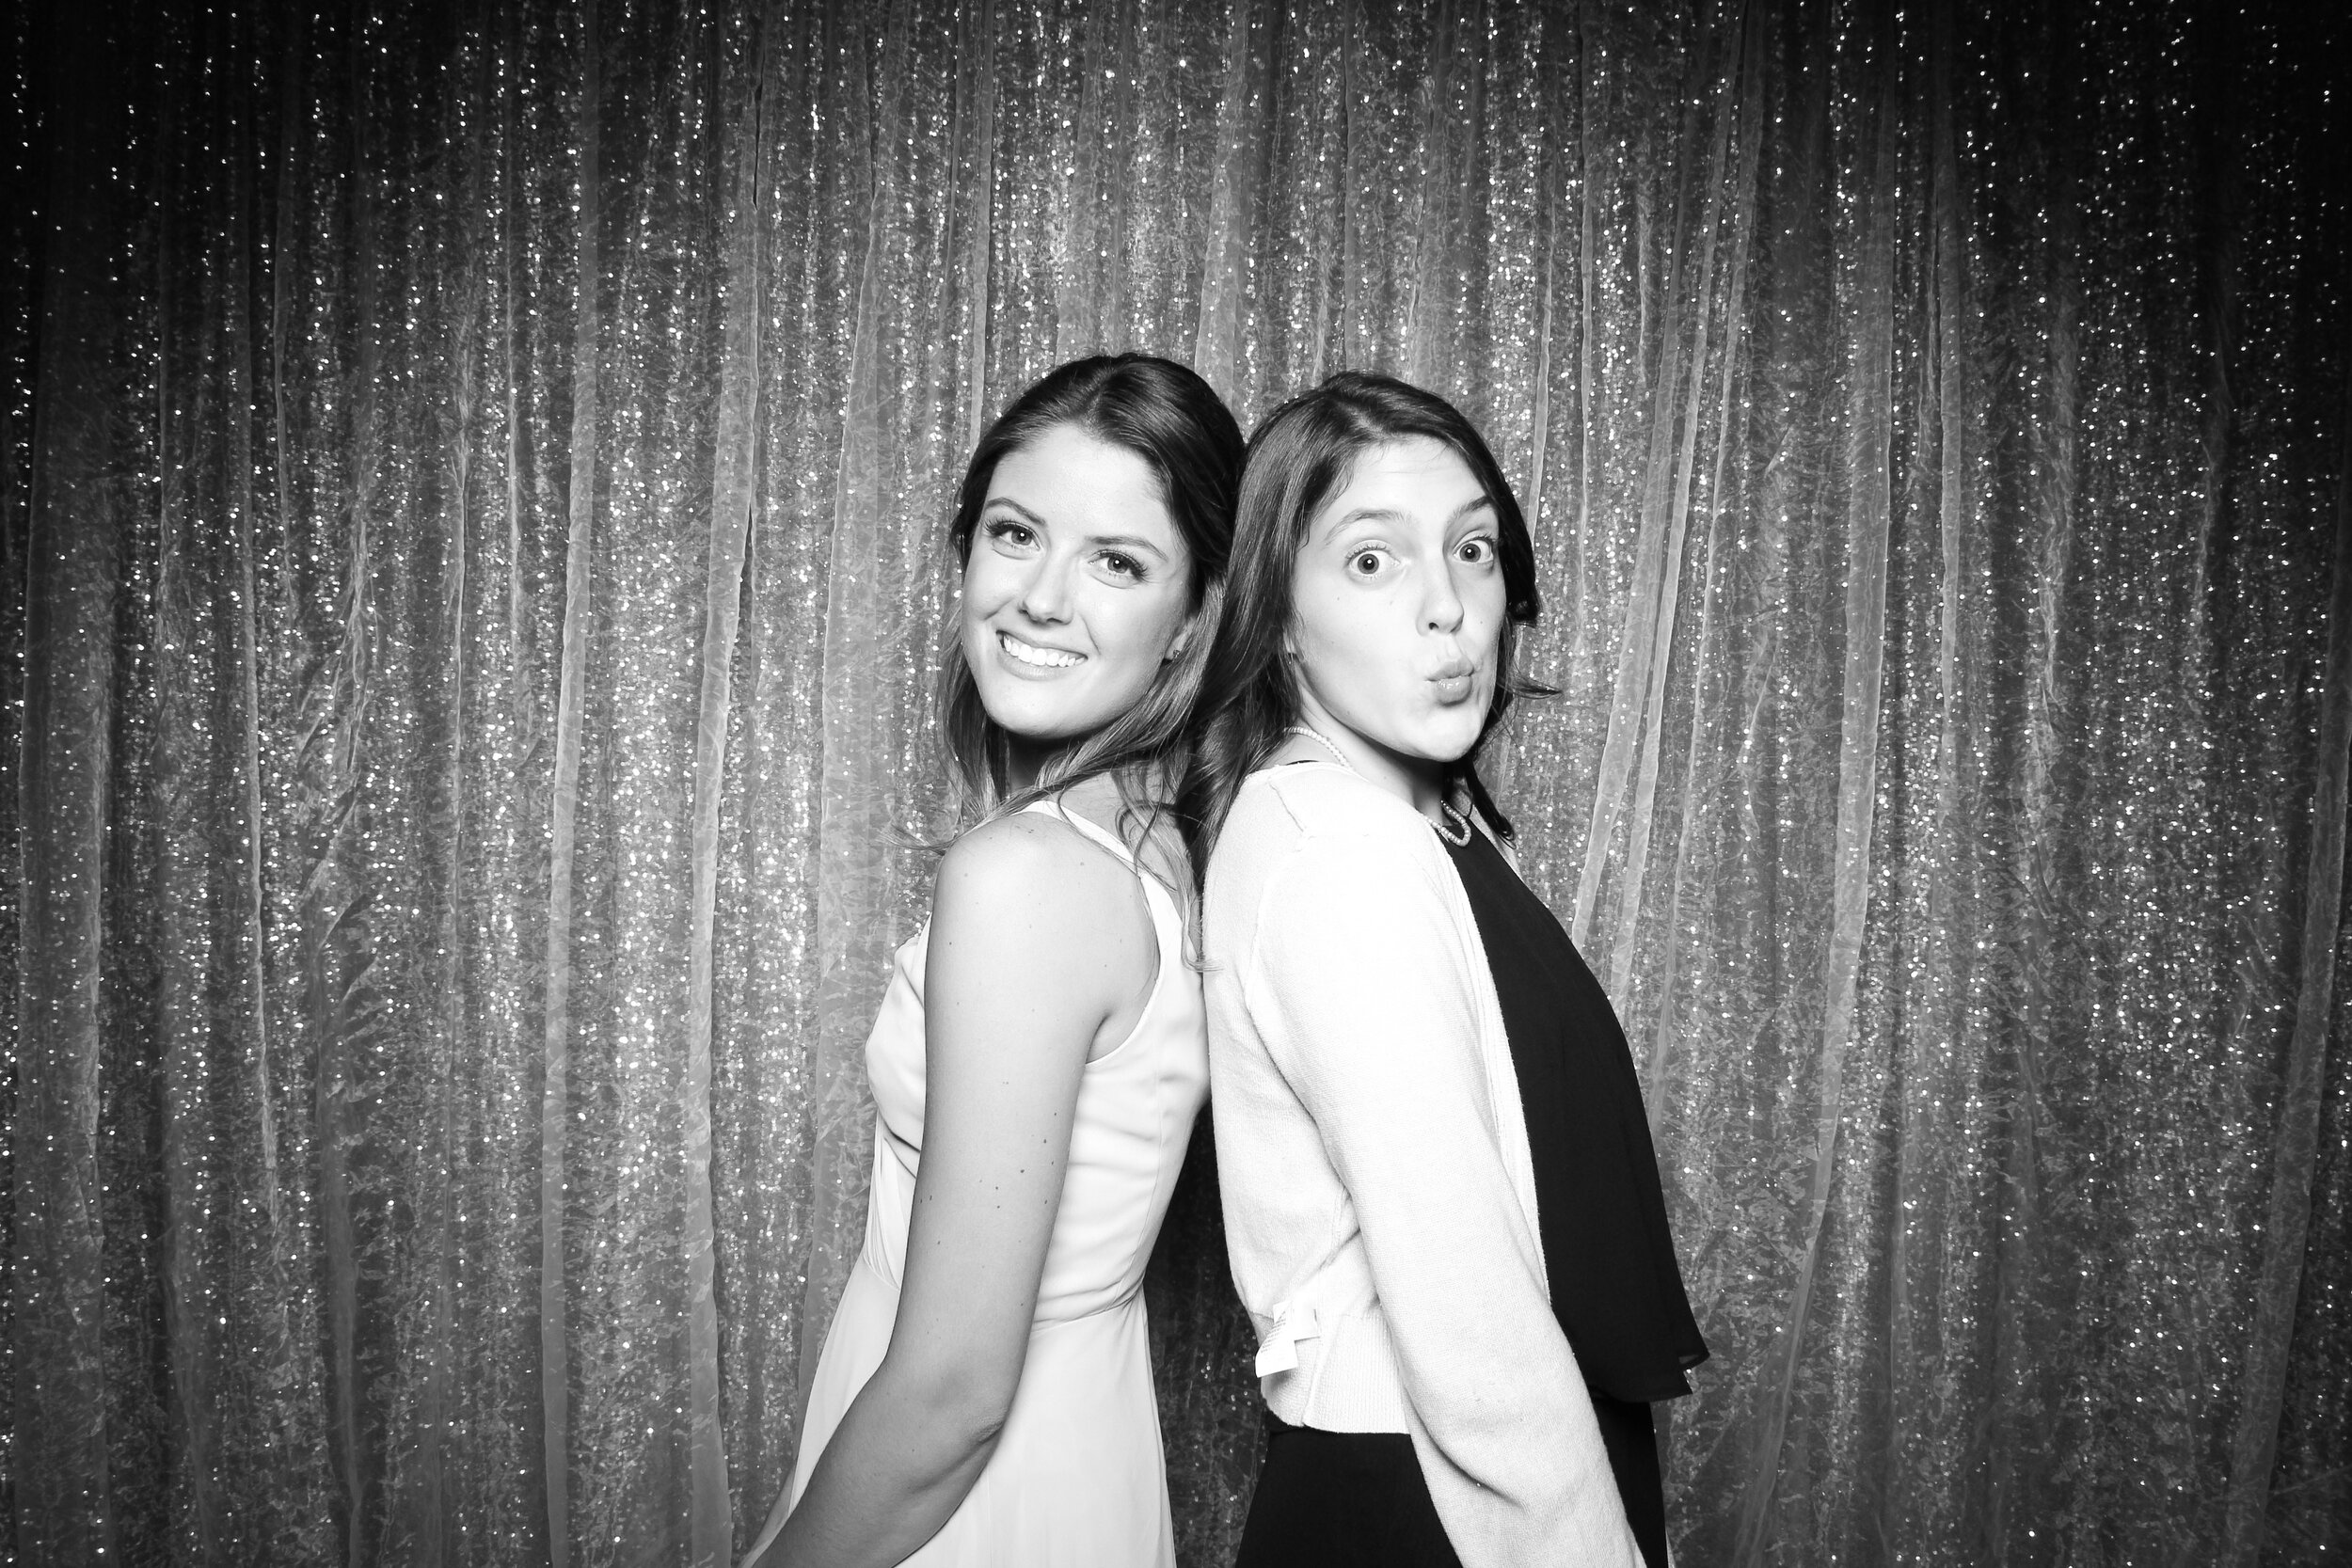 Chicago_Vintage_Wedding_Photobooth_Country_Club_16.jpg